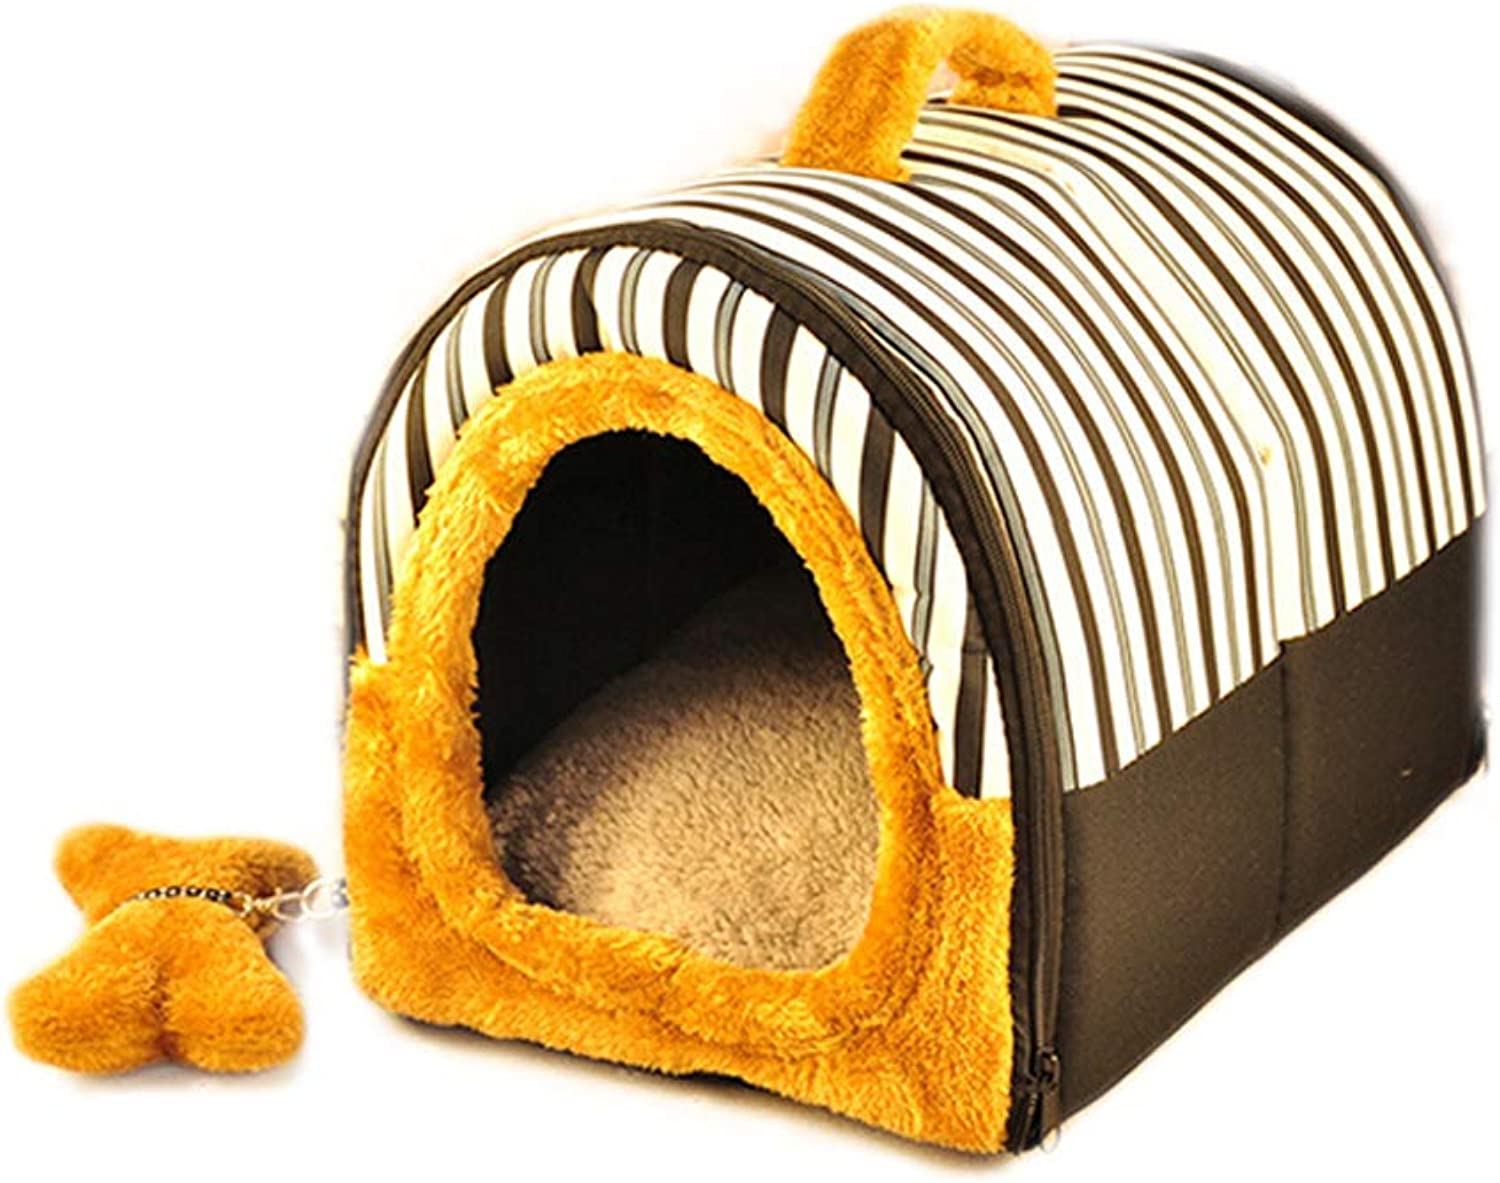 Black Striped House Type Pet Nest Four Seasons Universal Removable And Washable Small And Medium Resilience Cotton Dog Cat Litter Bed To Keep Warm MUMUJIN (Size   S(4 kg of pets))